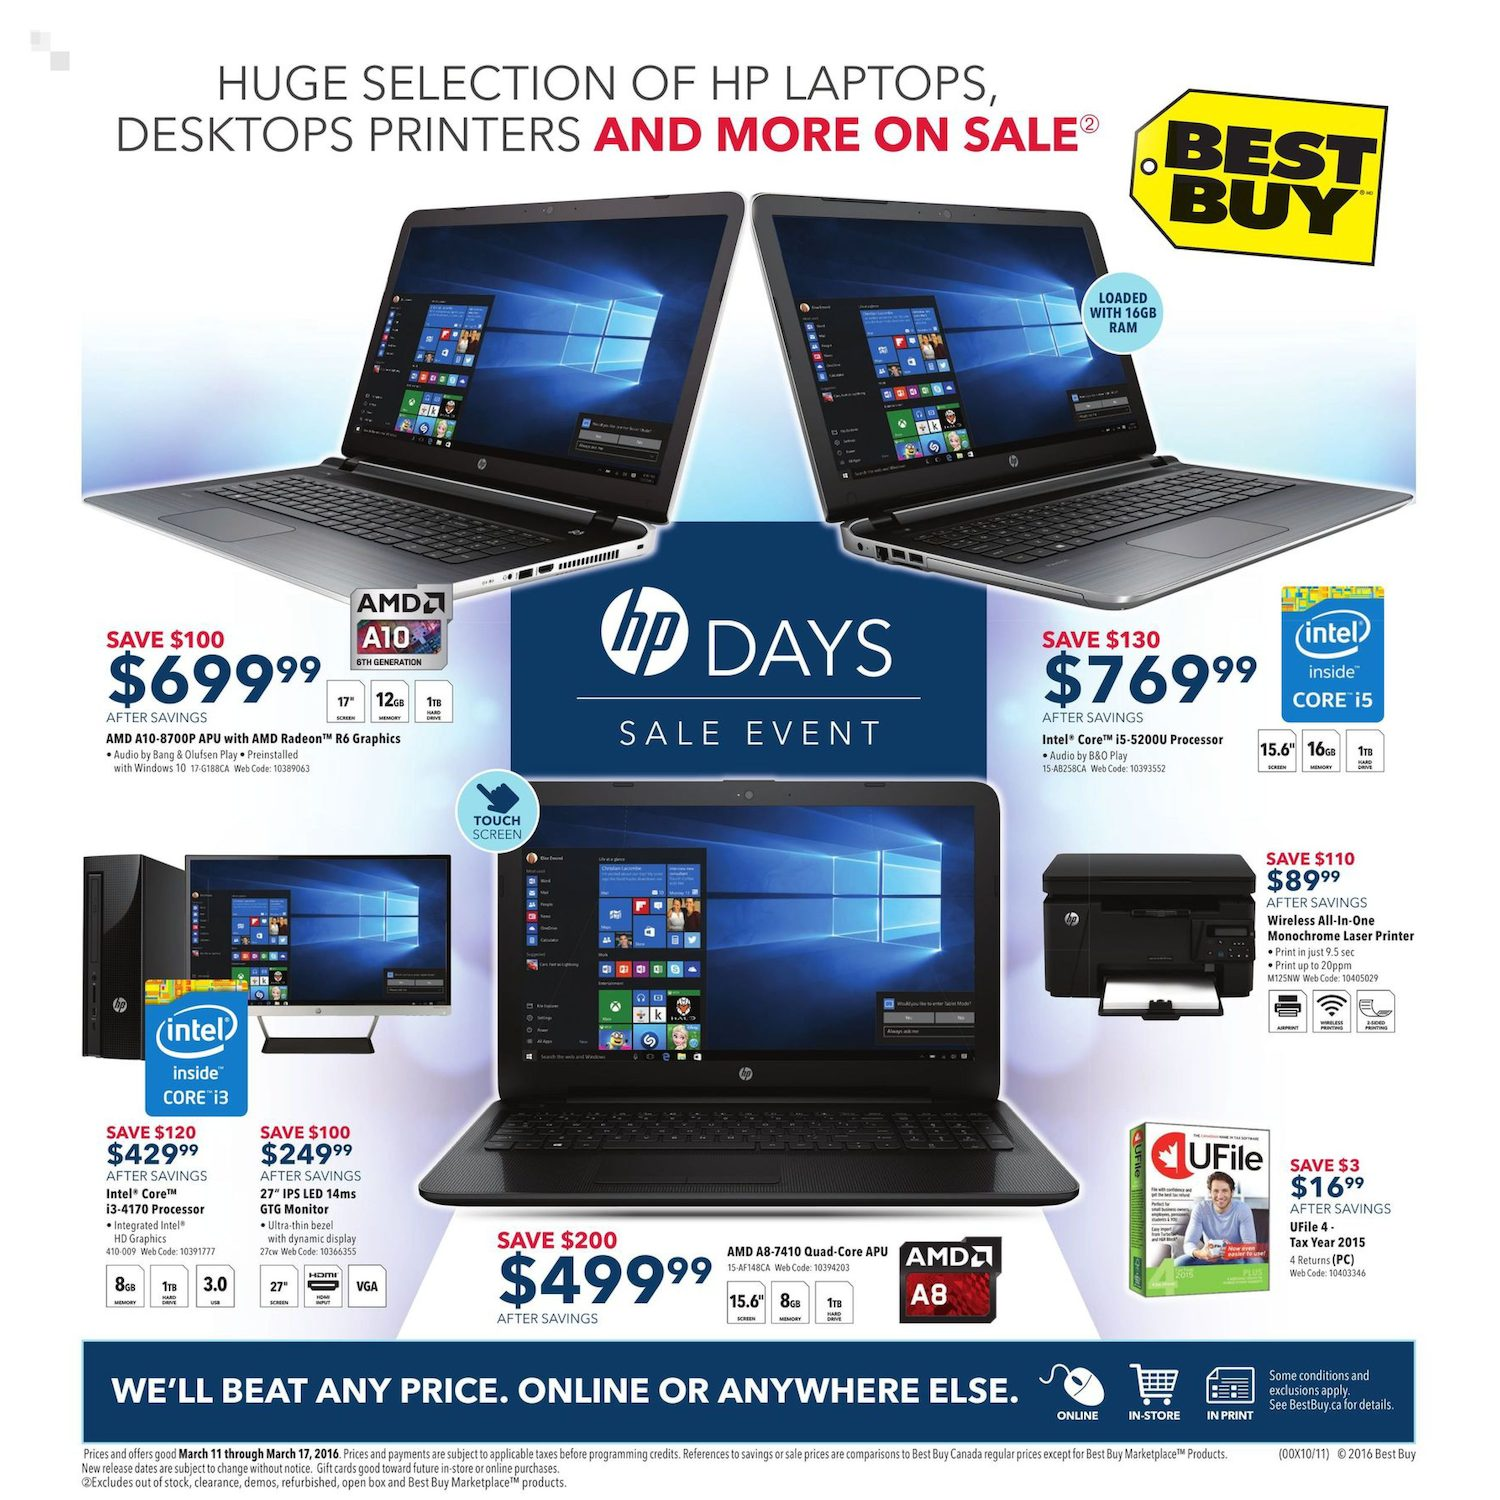 Best buy weekly flyer weekly hp days sale event mar 11 17 best buy weekly flyer weekly hp days sale event mar 11 17 redflagdeals fandeluxe Images